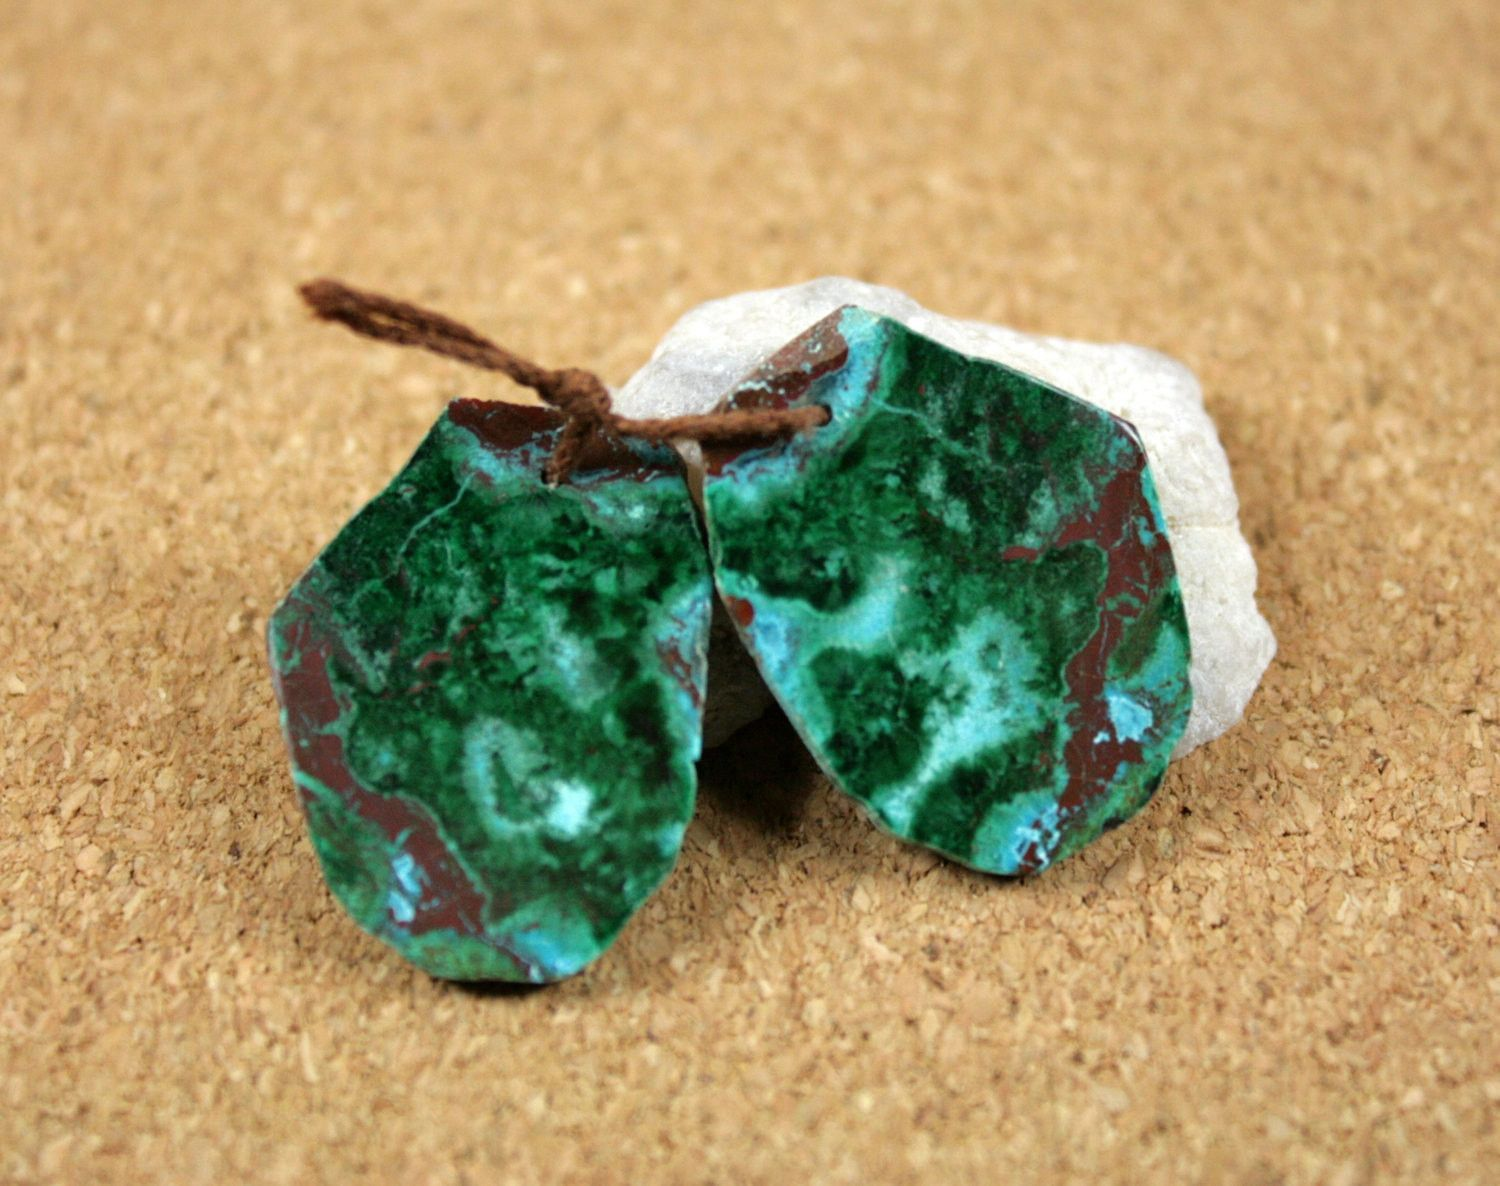 Malachite and Chrysocholla Organic Shape Earring Pair - Green Brown and Light Blue Matched Pair